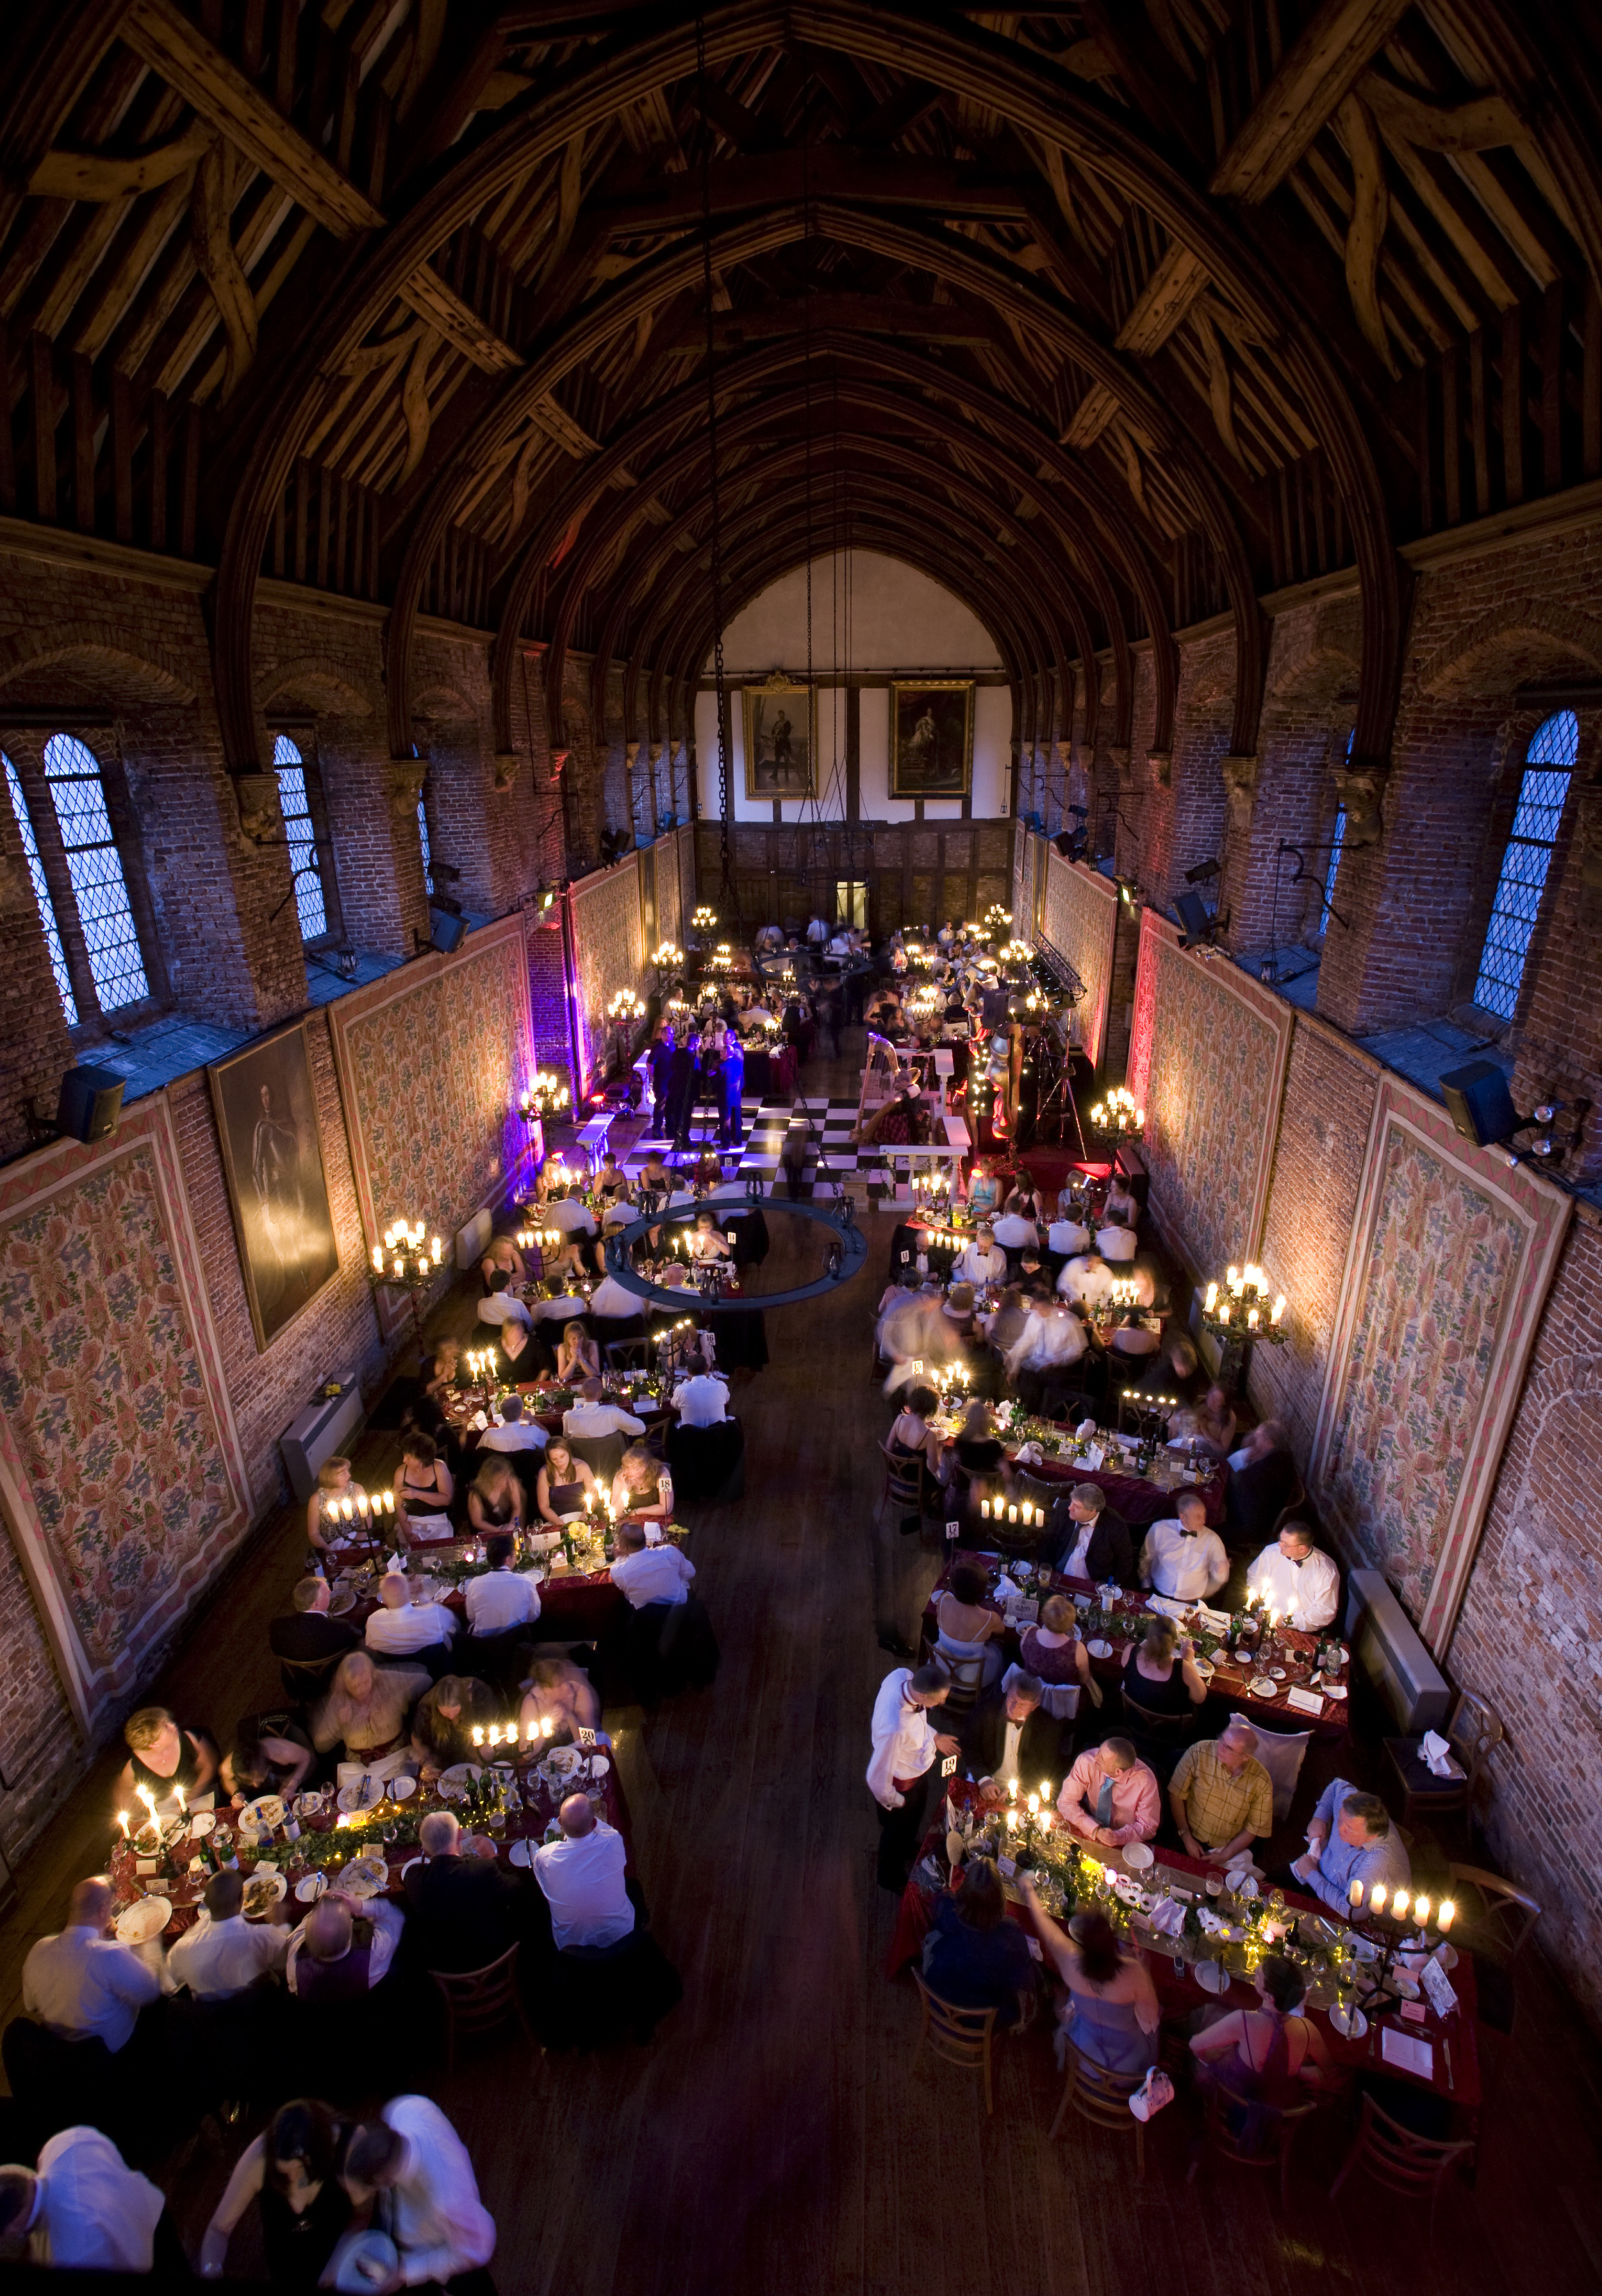 Hatfield house by candlelight.